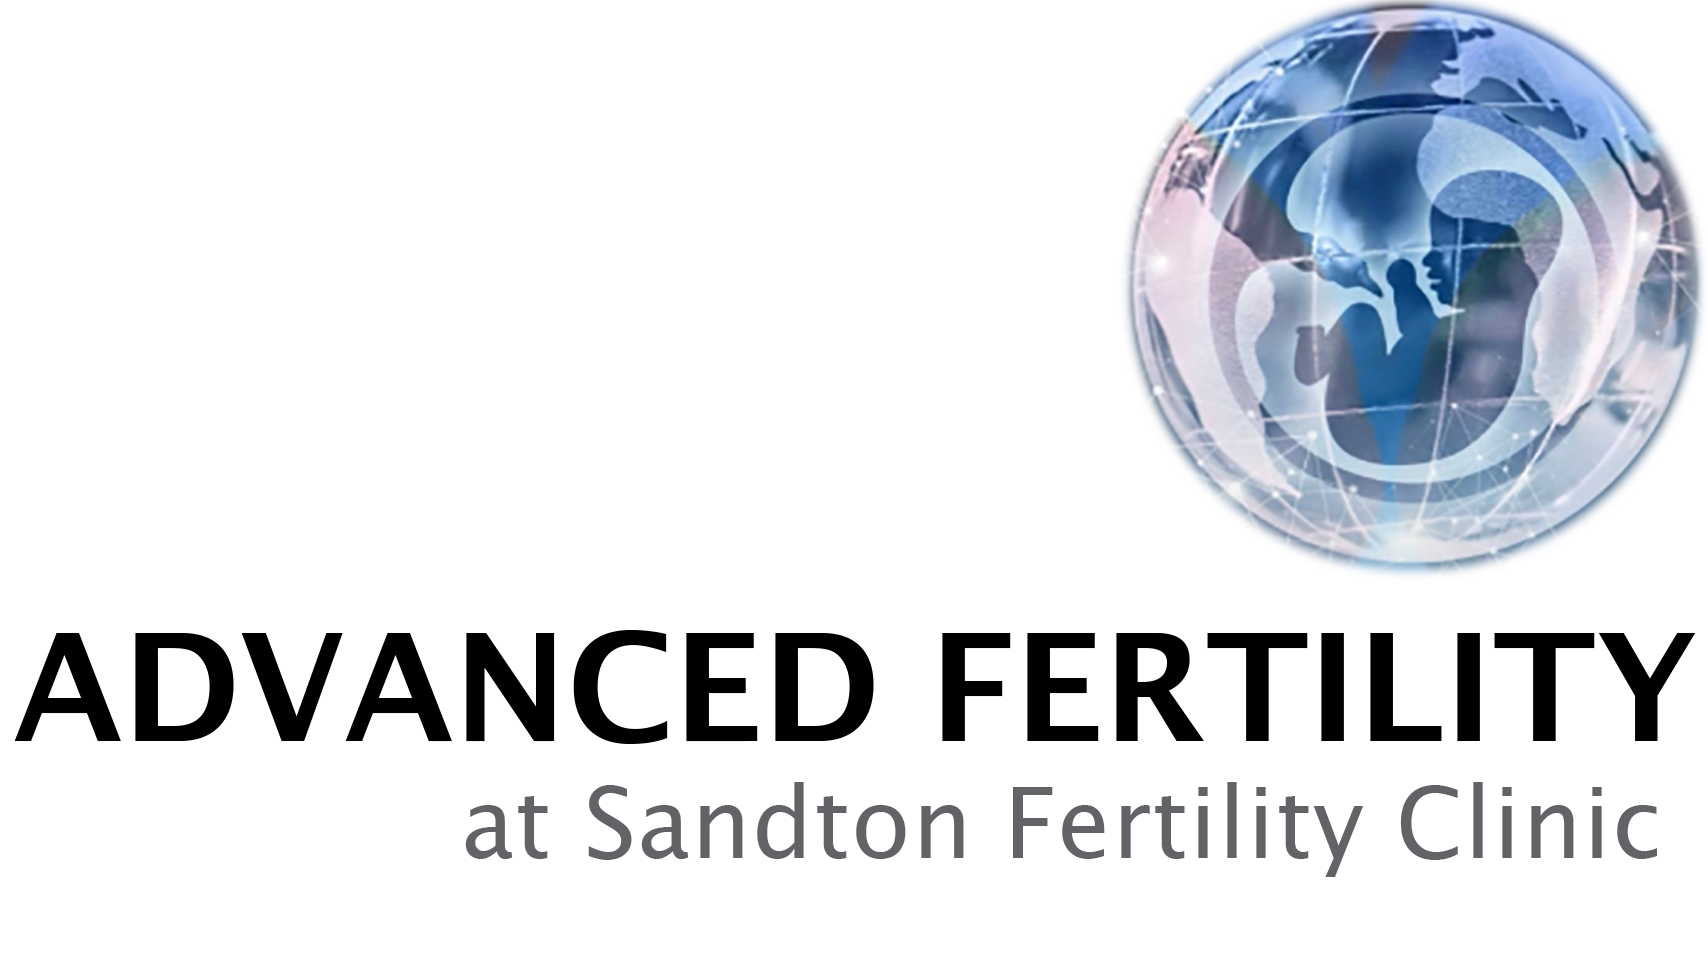 Advanced Fertility